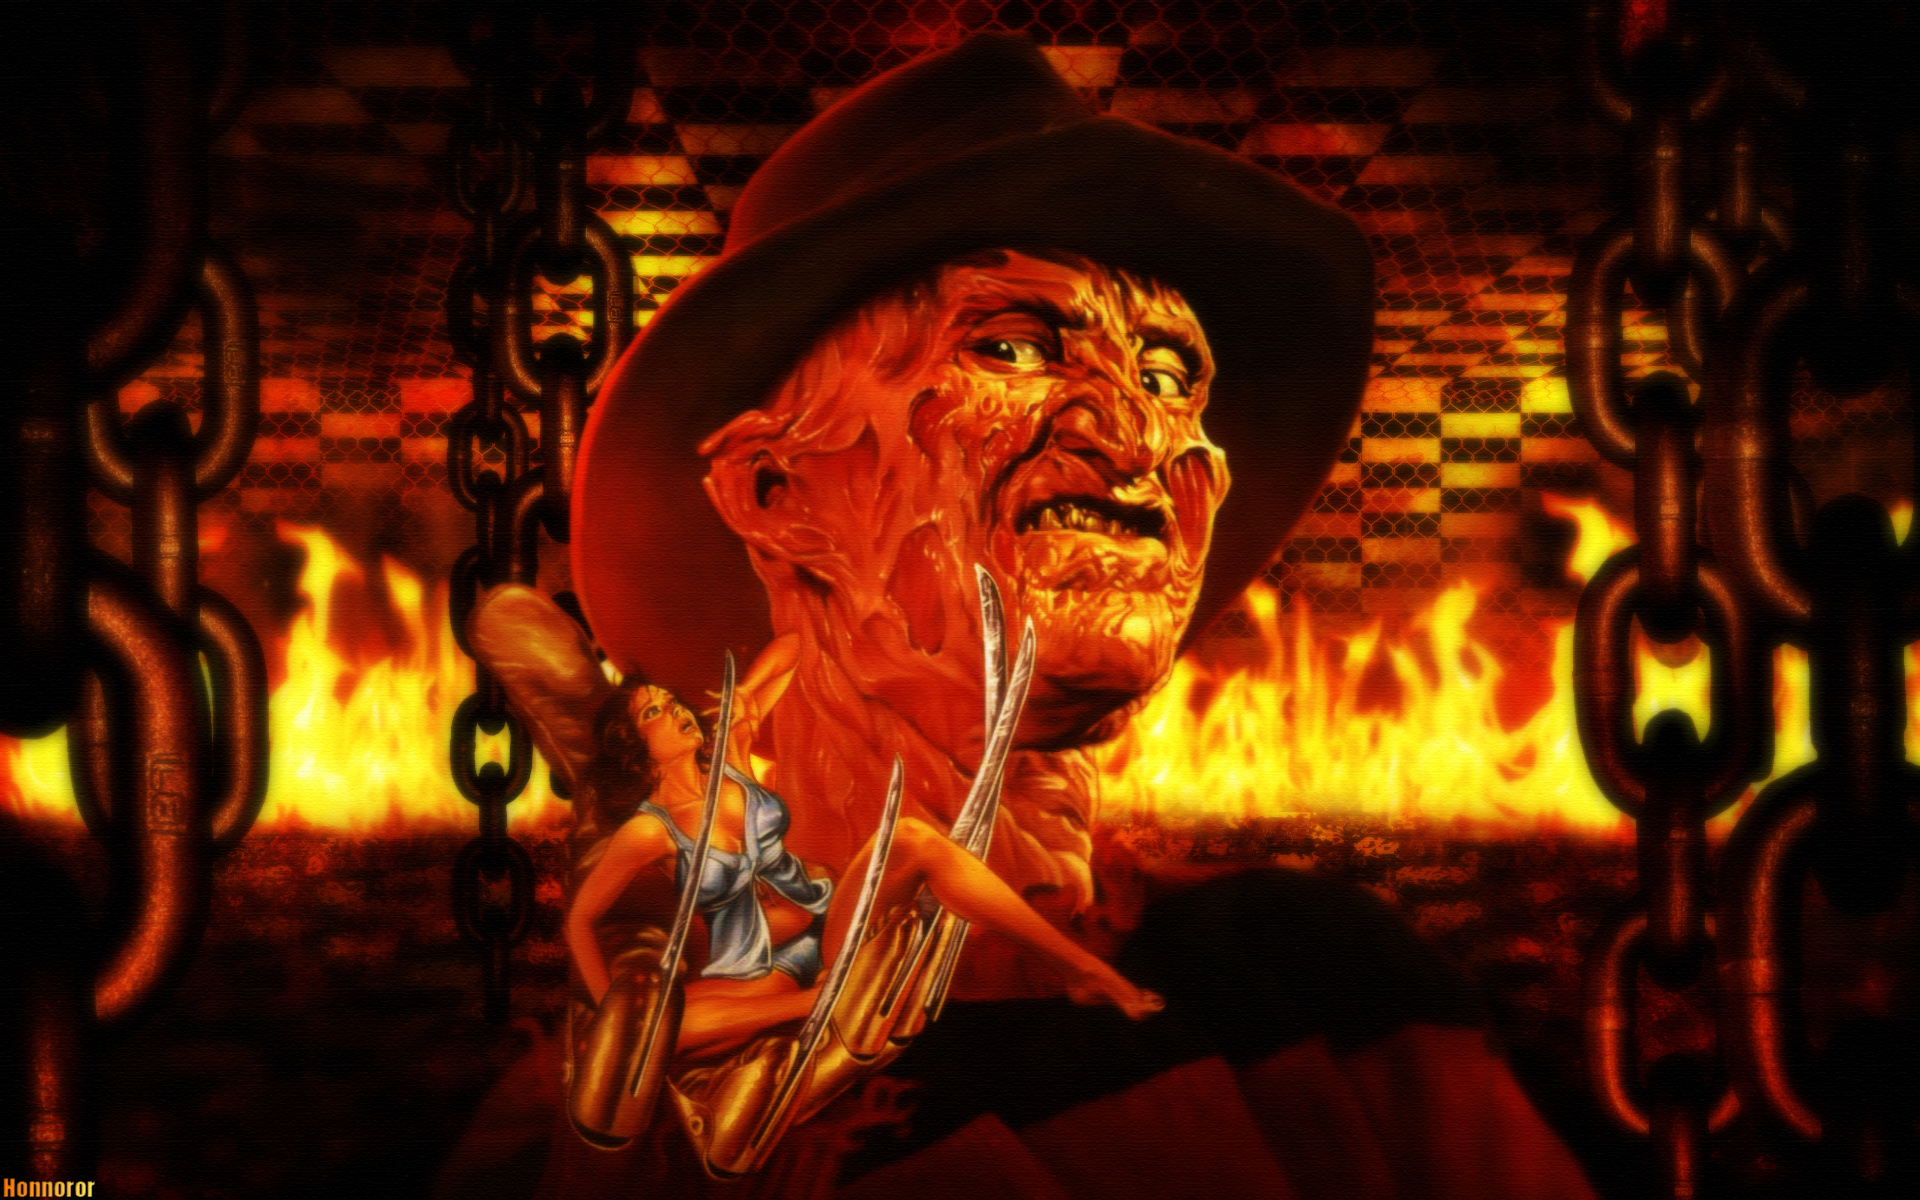 A Nightmare On Elm Street (1984) Wallpapers, Pictures, Images